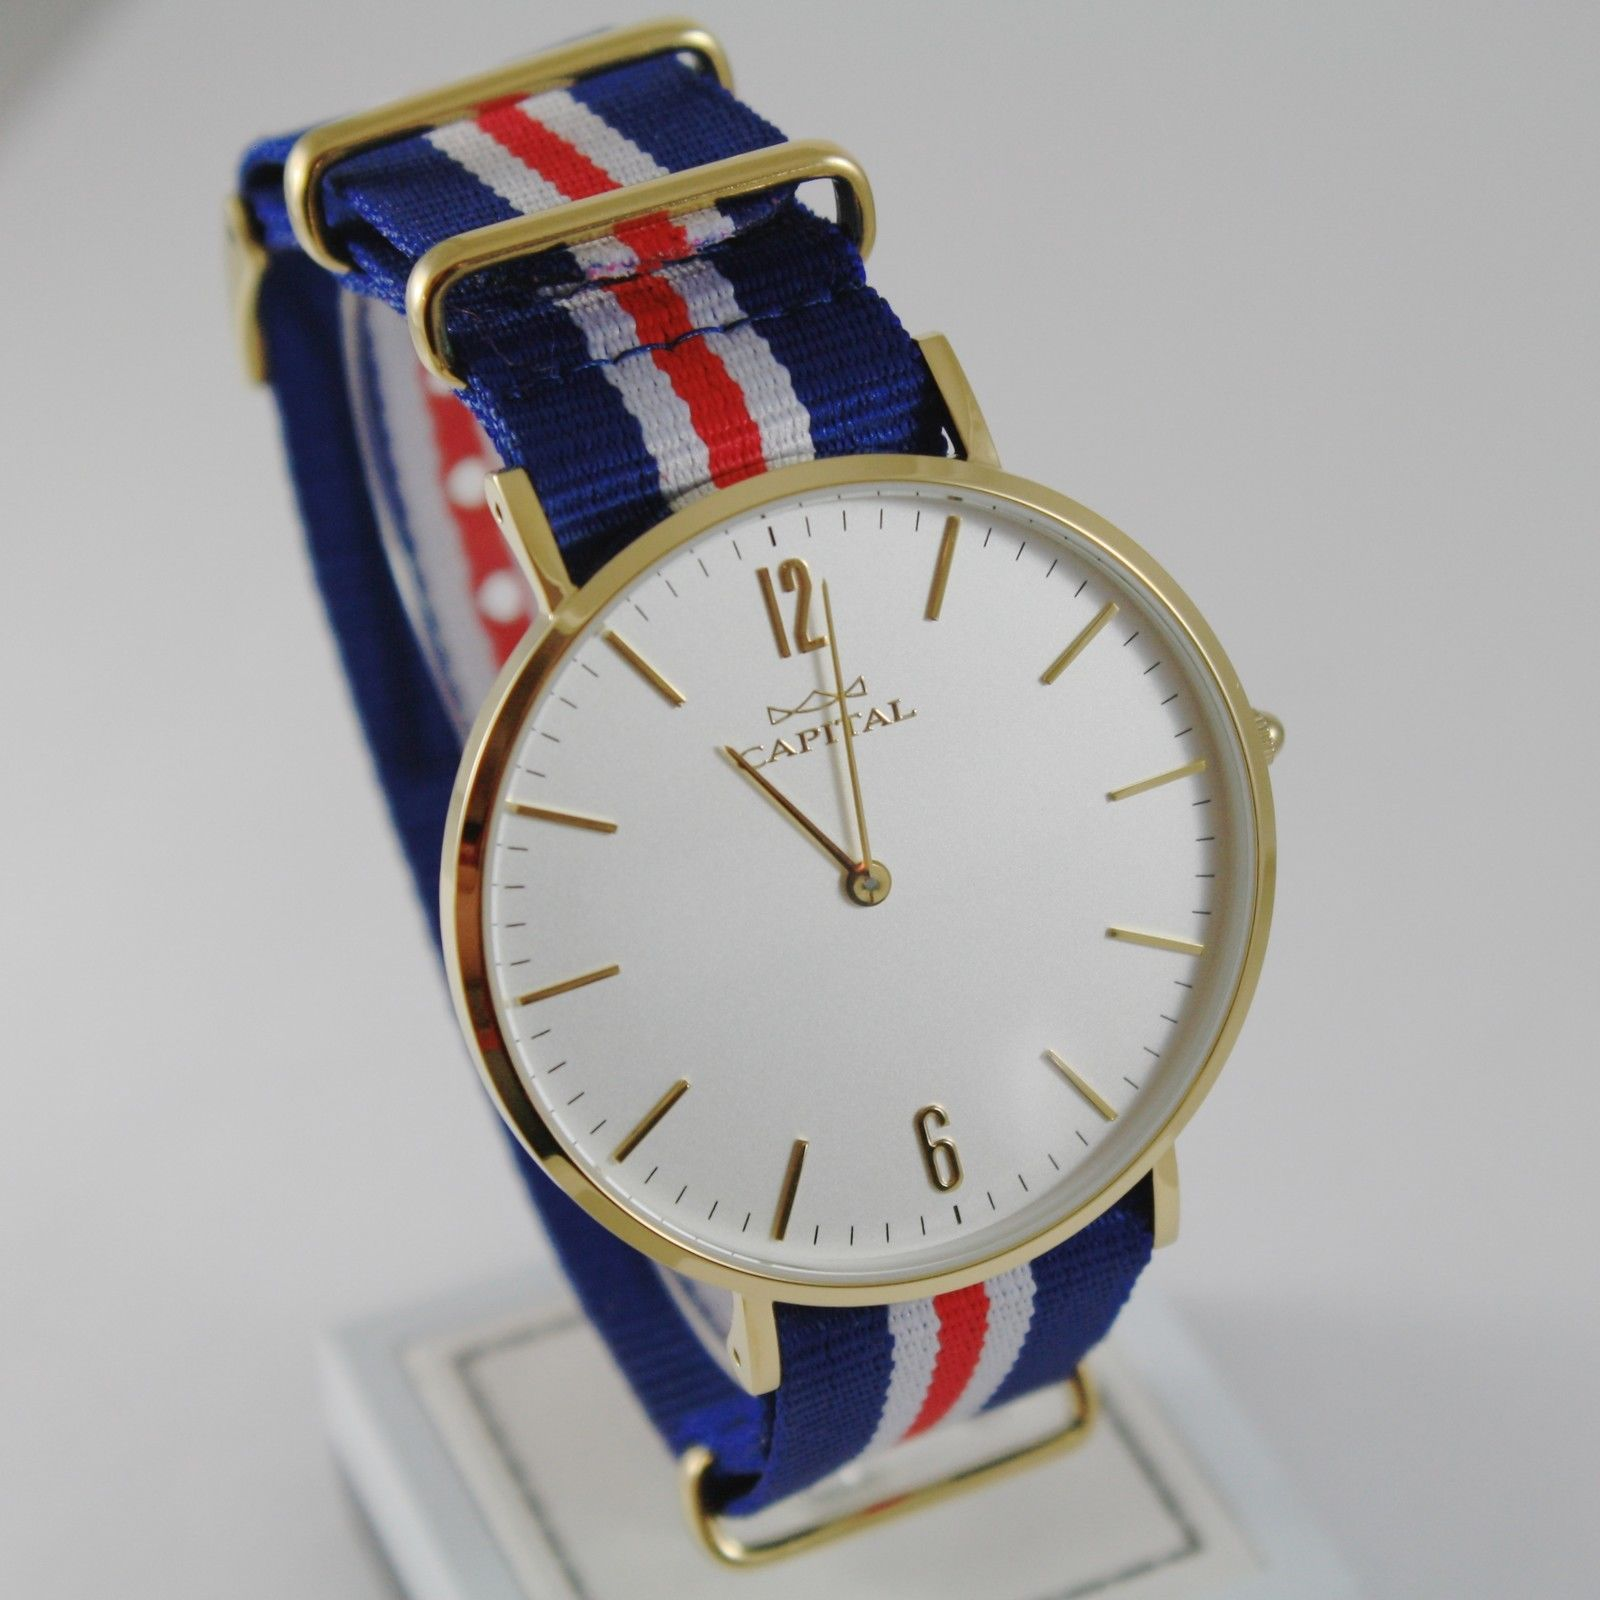 CAPITAL WATCH QUARTZ MOVEMENT 41 MM YELLOW CASE BLUE RED WHITE FABRIC BAND NYLON